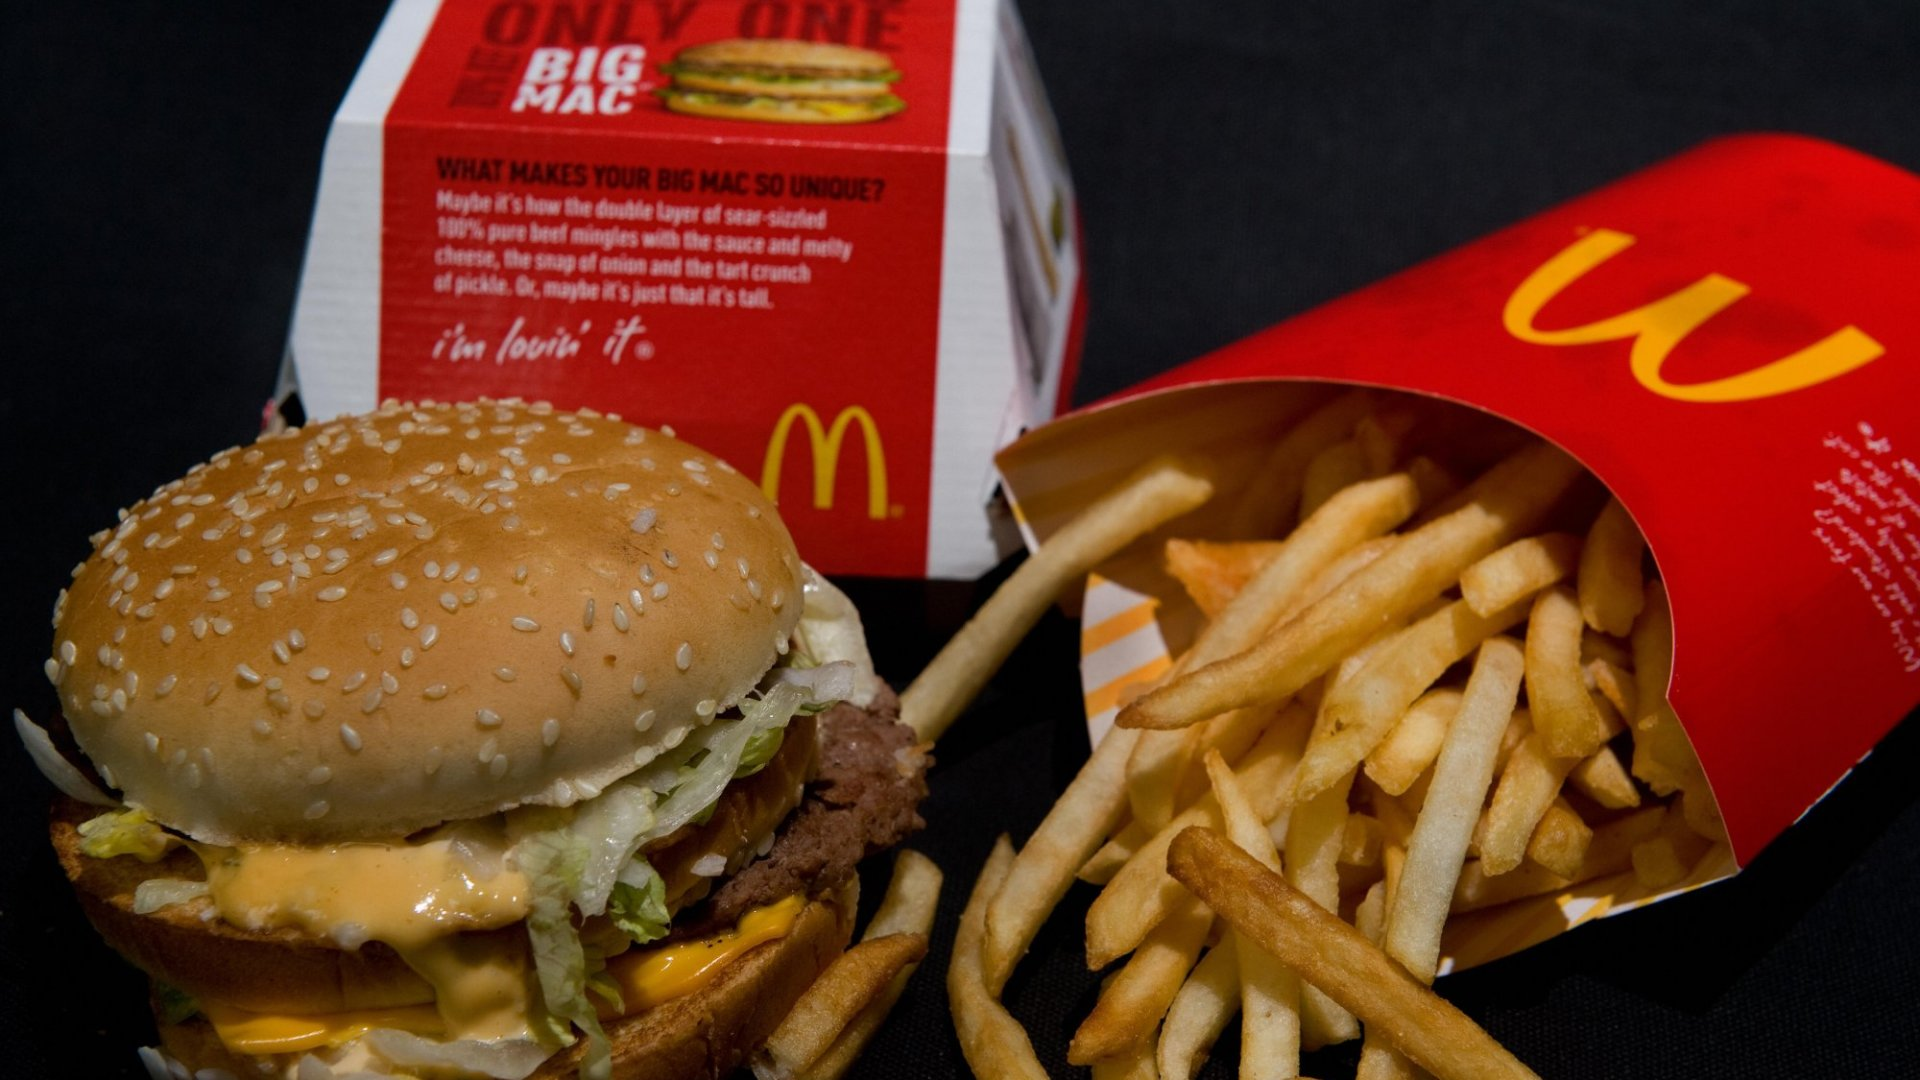 This McDonald's Fan Just Ate His 30,000th Big Mac. The Math Shows Just How Great That Is For McDonald's